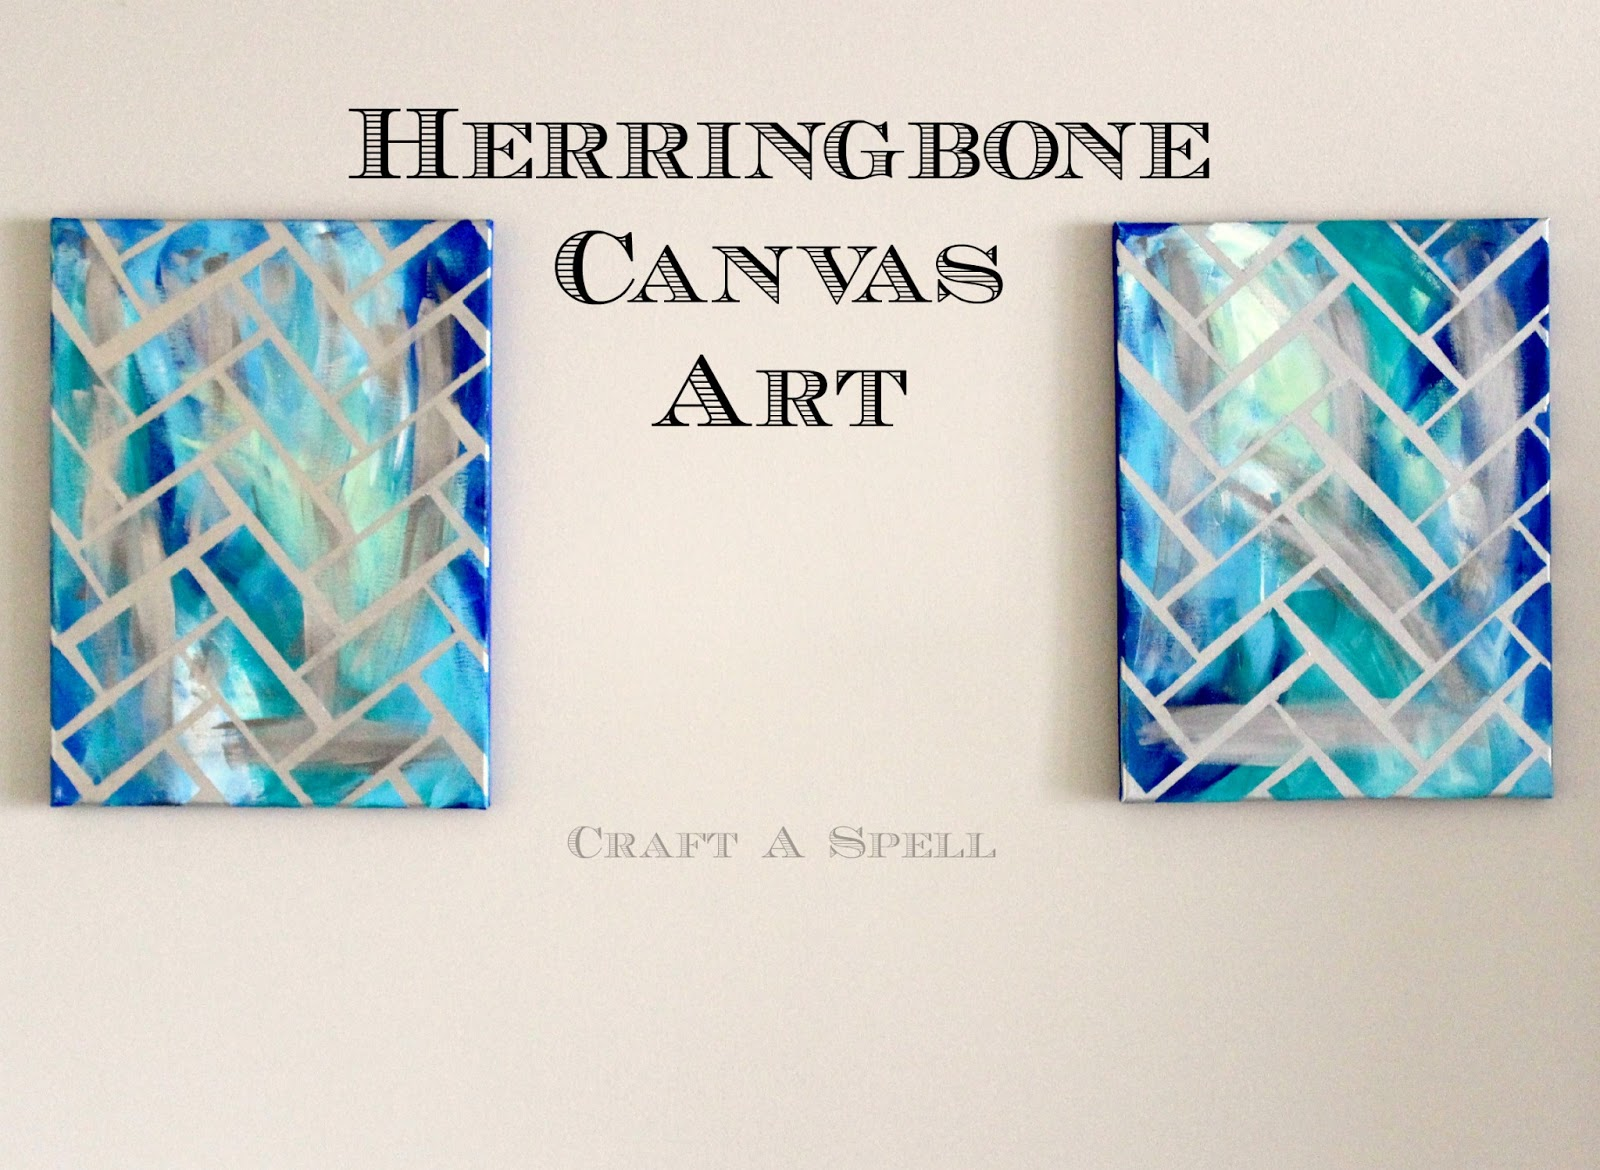 Craft a spell diy herringbone canvas art diy herringbone canvas art solutioingenieria